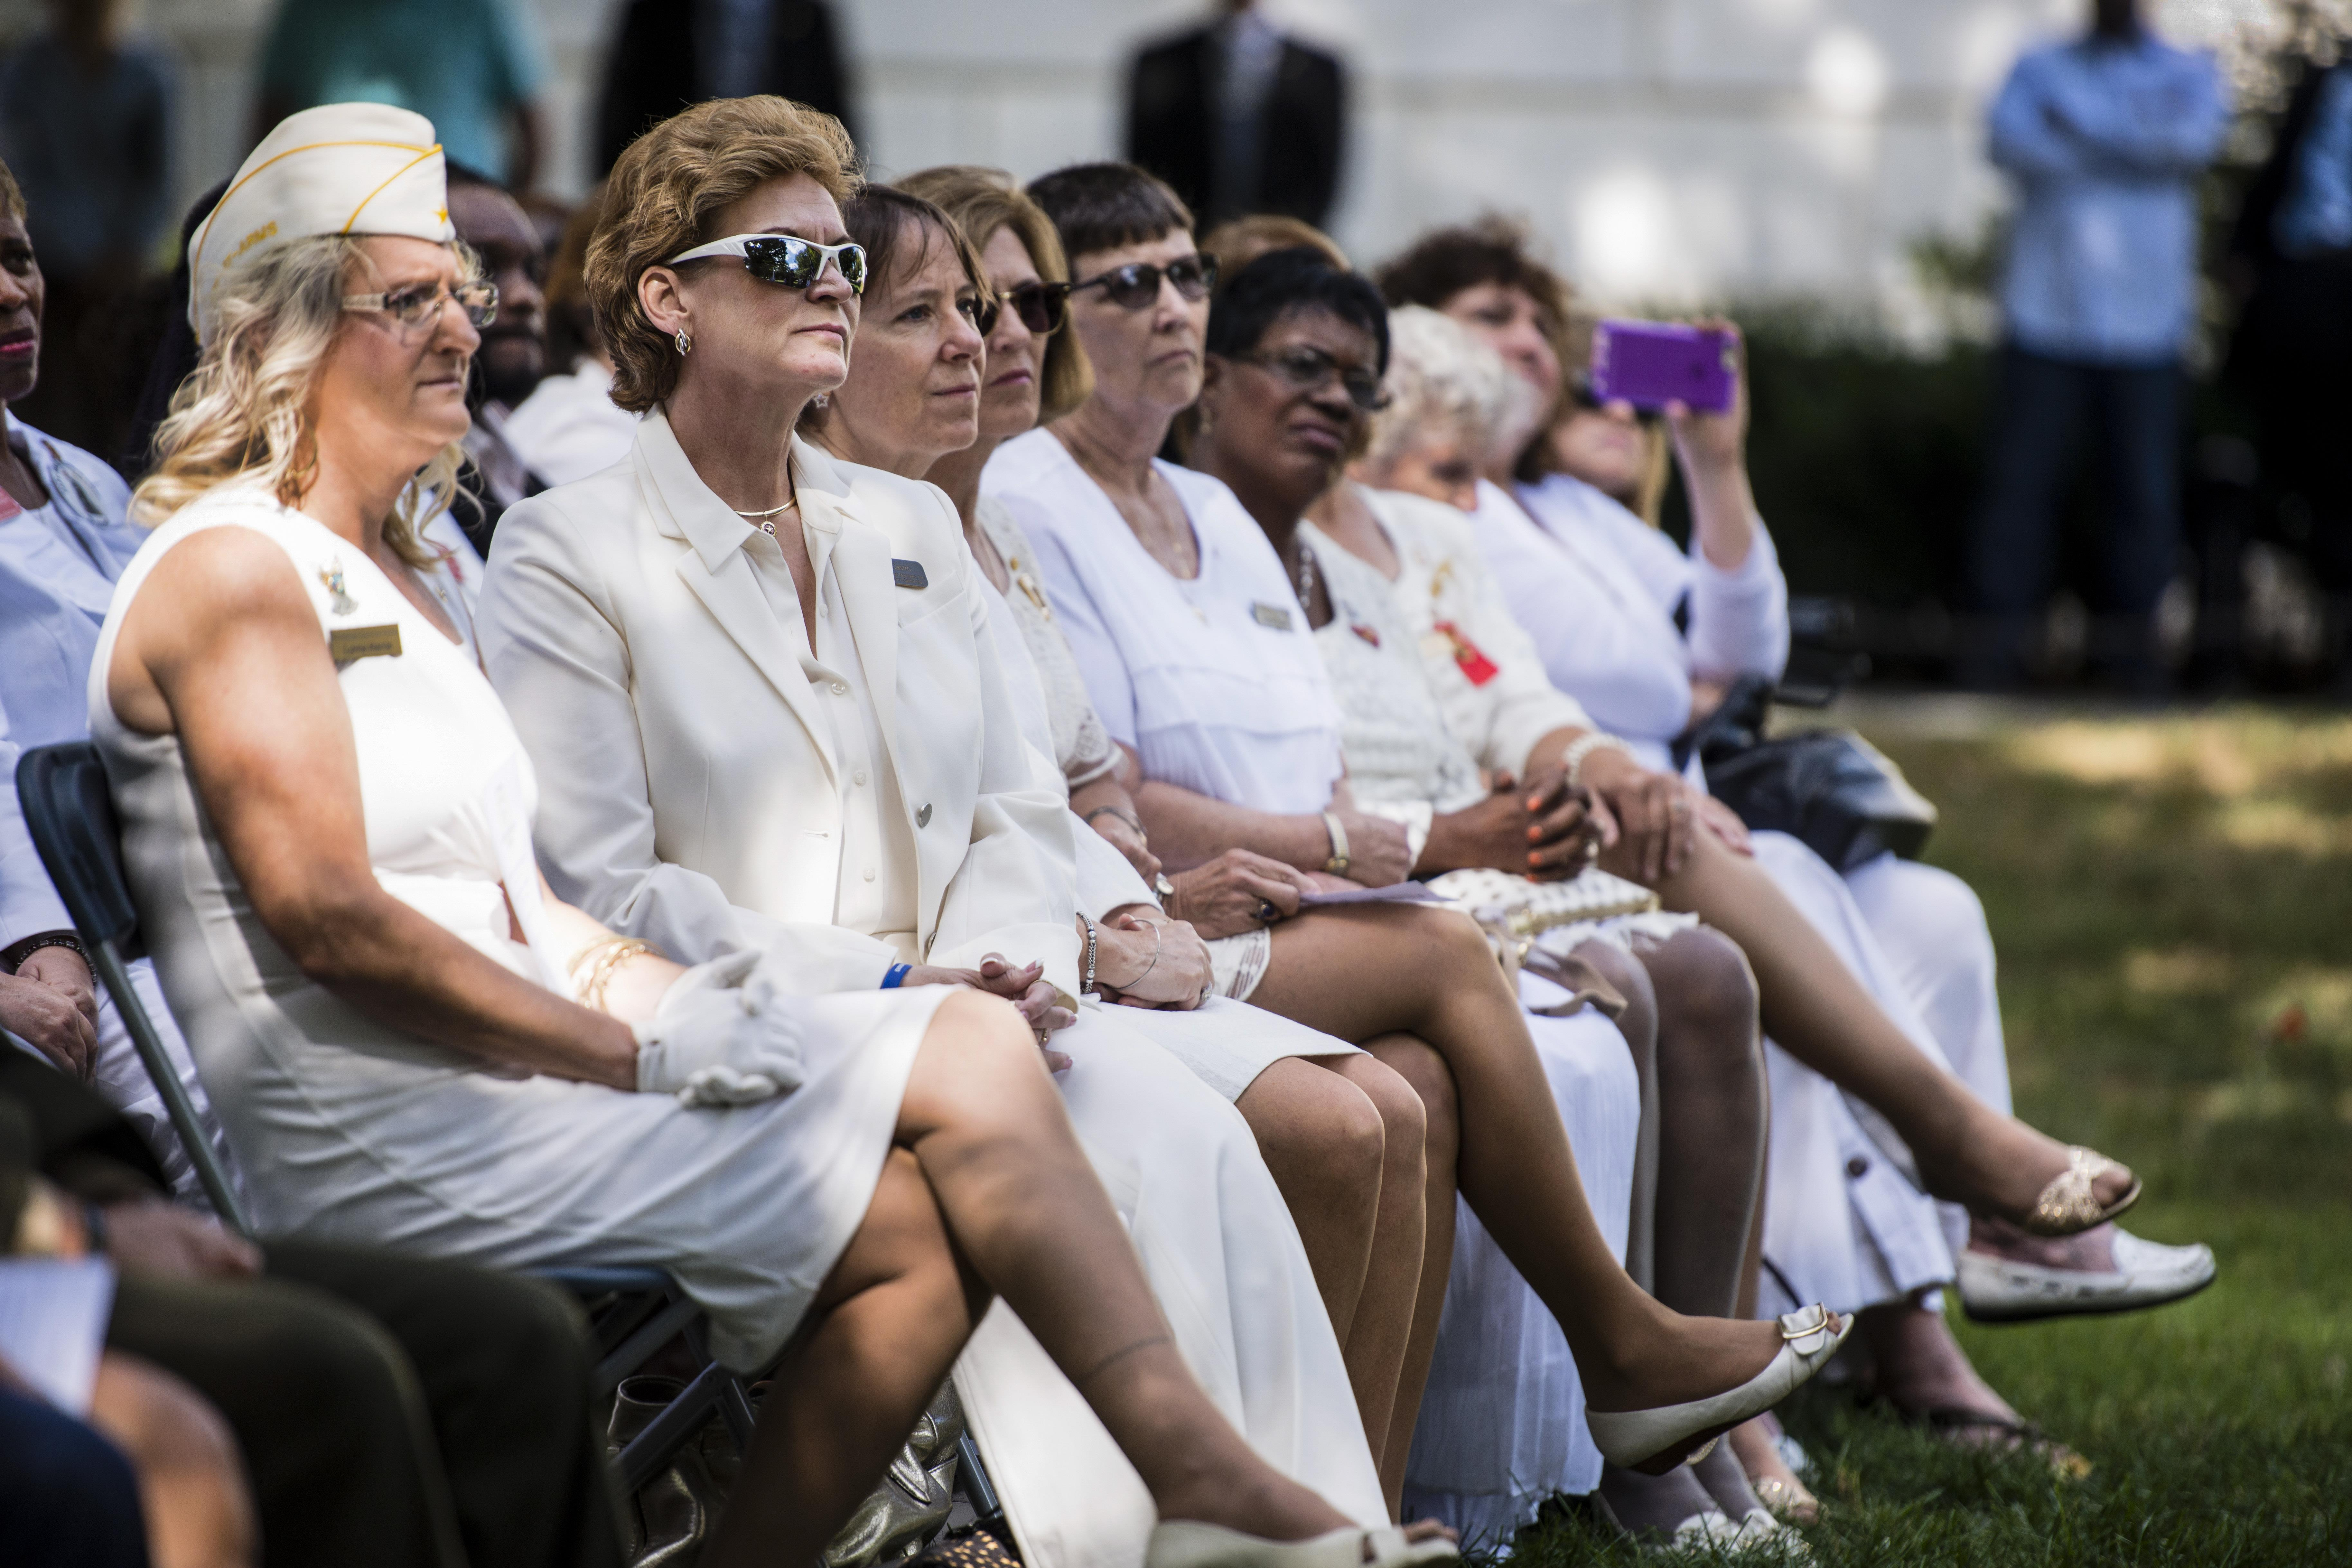 gold star mothers Gold star mothers is an organization made up of women whose sons were killed in military combat during service in the united states armed forces recently a delegation of new york state gold star.